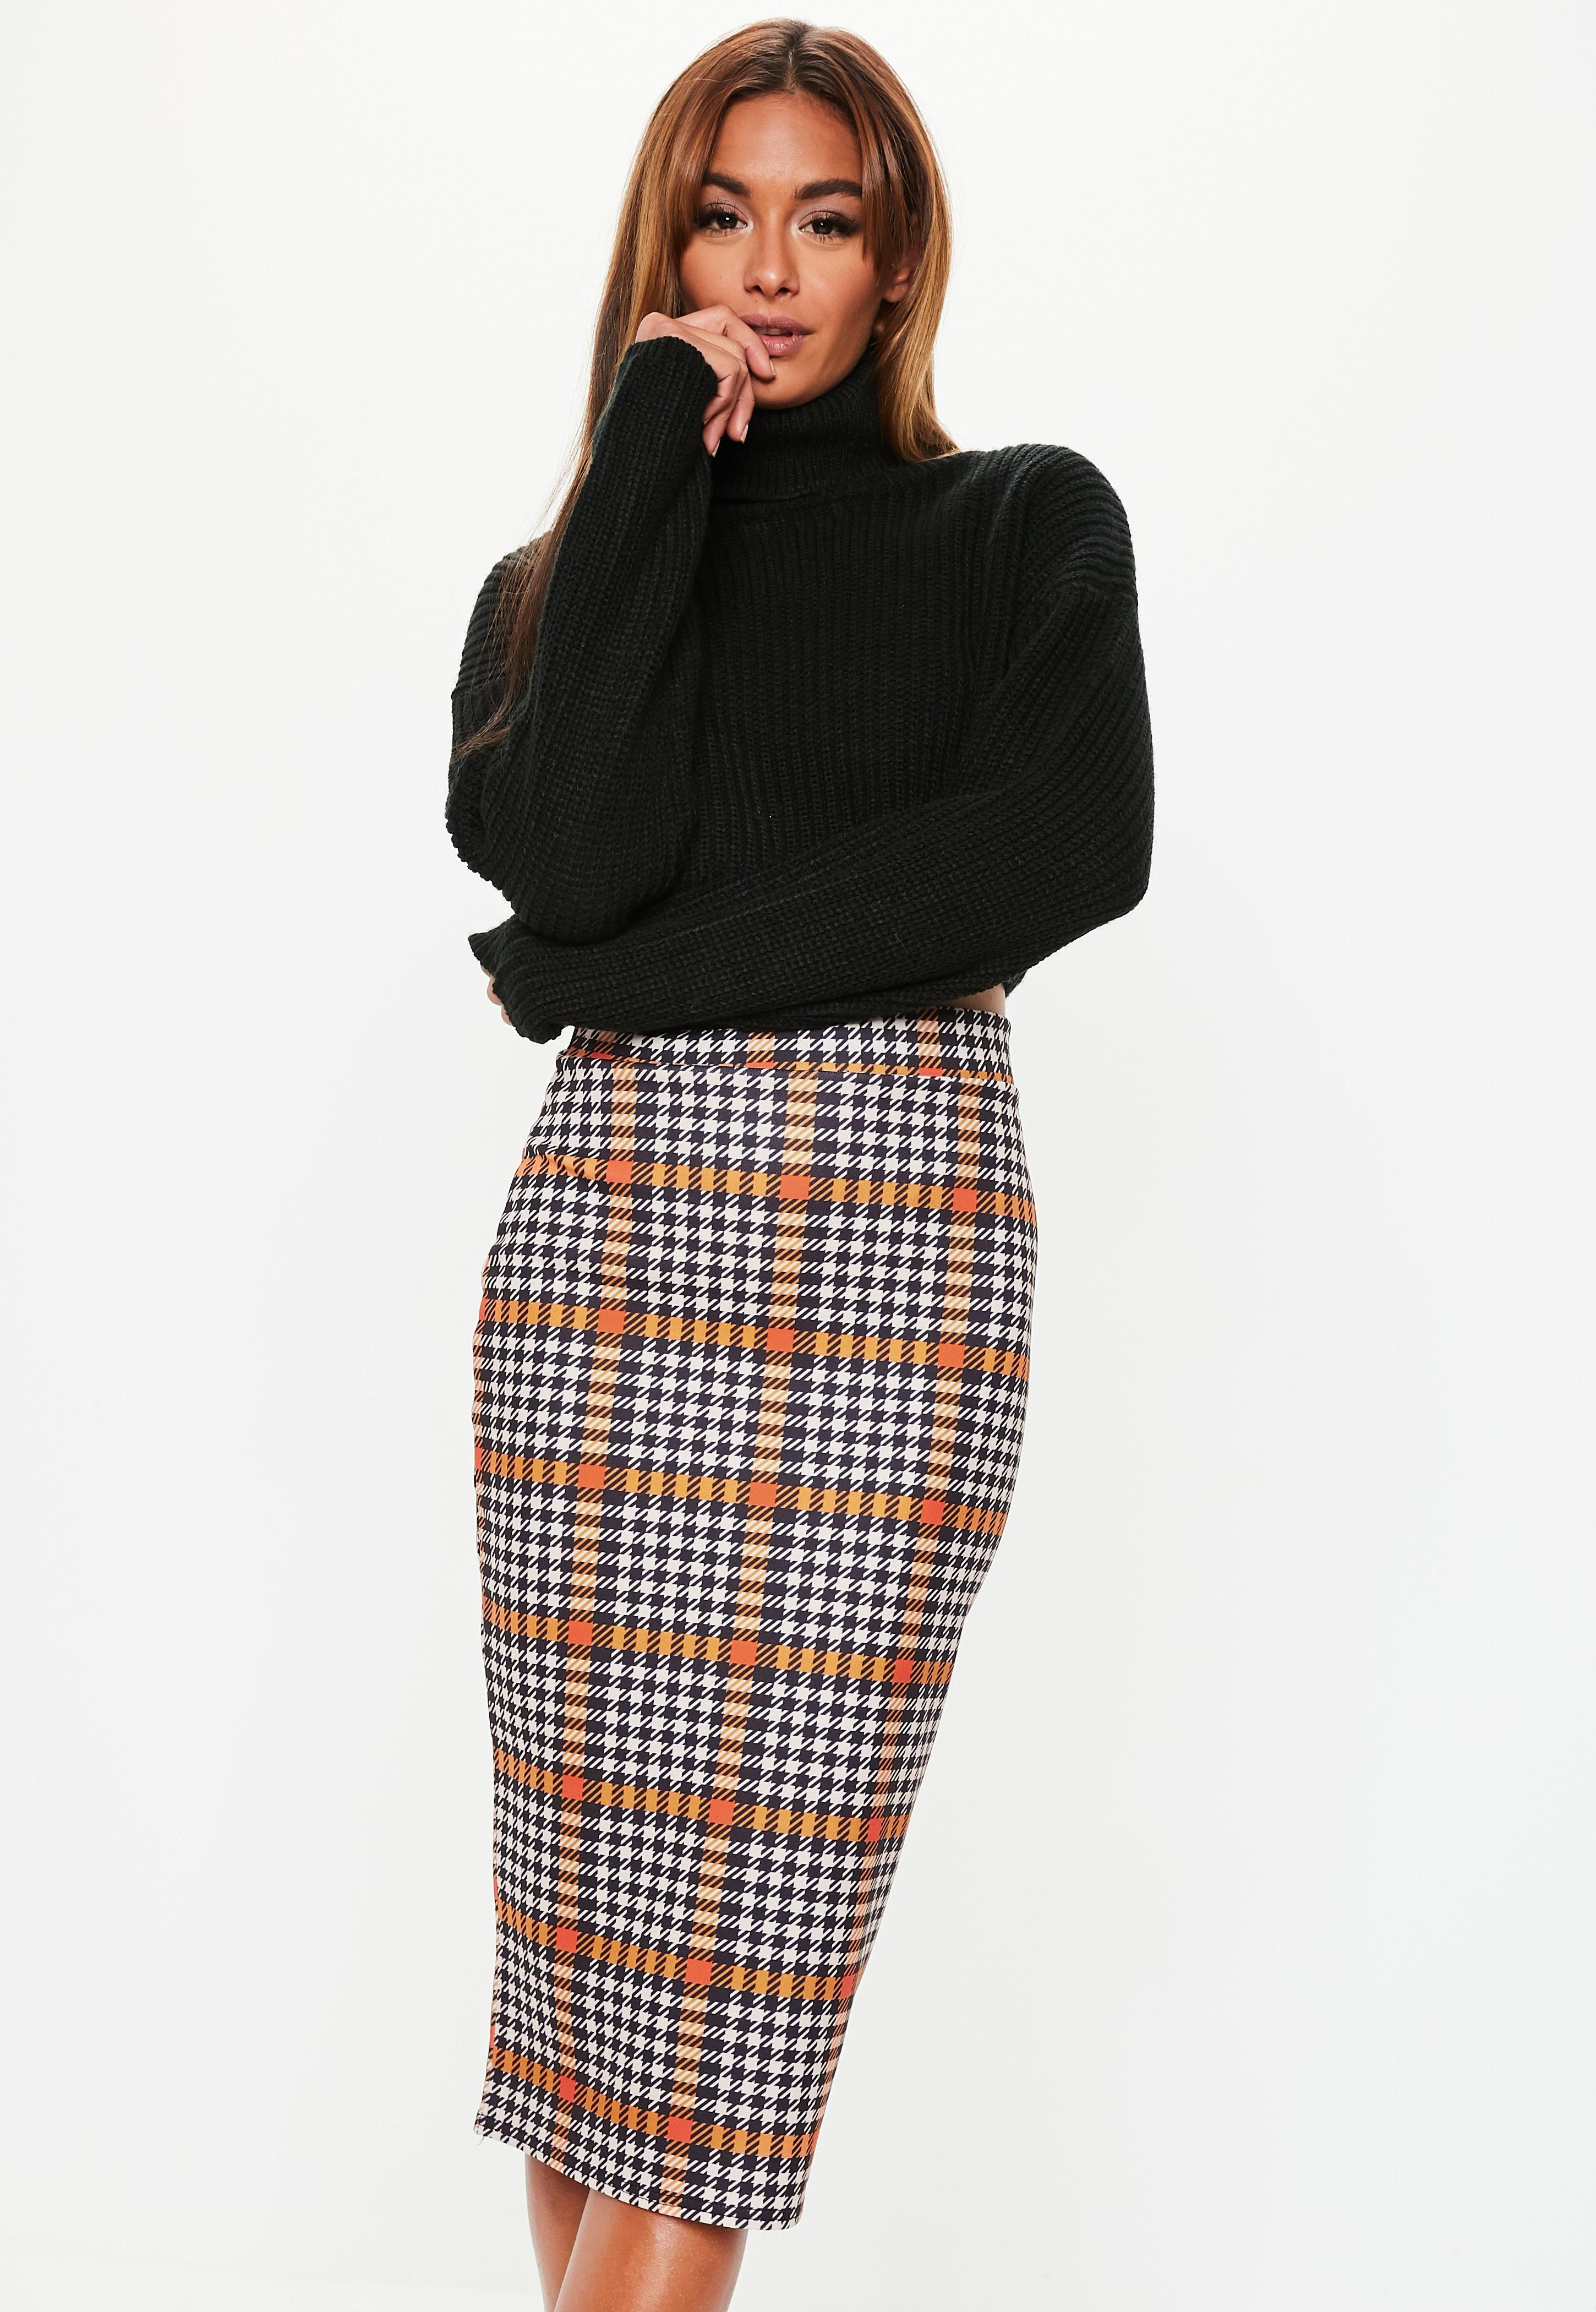 Trend the shop the v front skirt photo